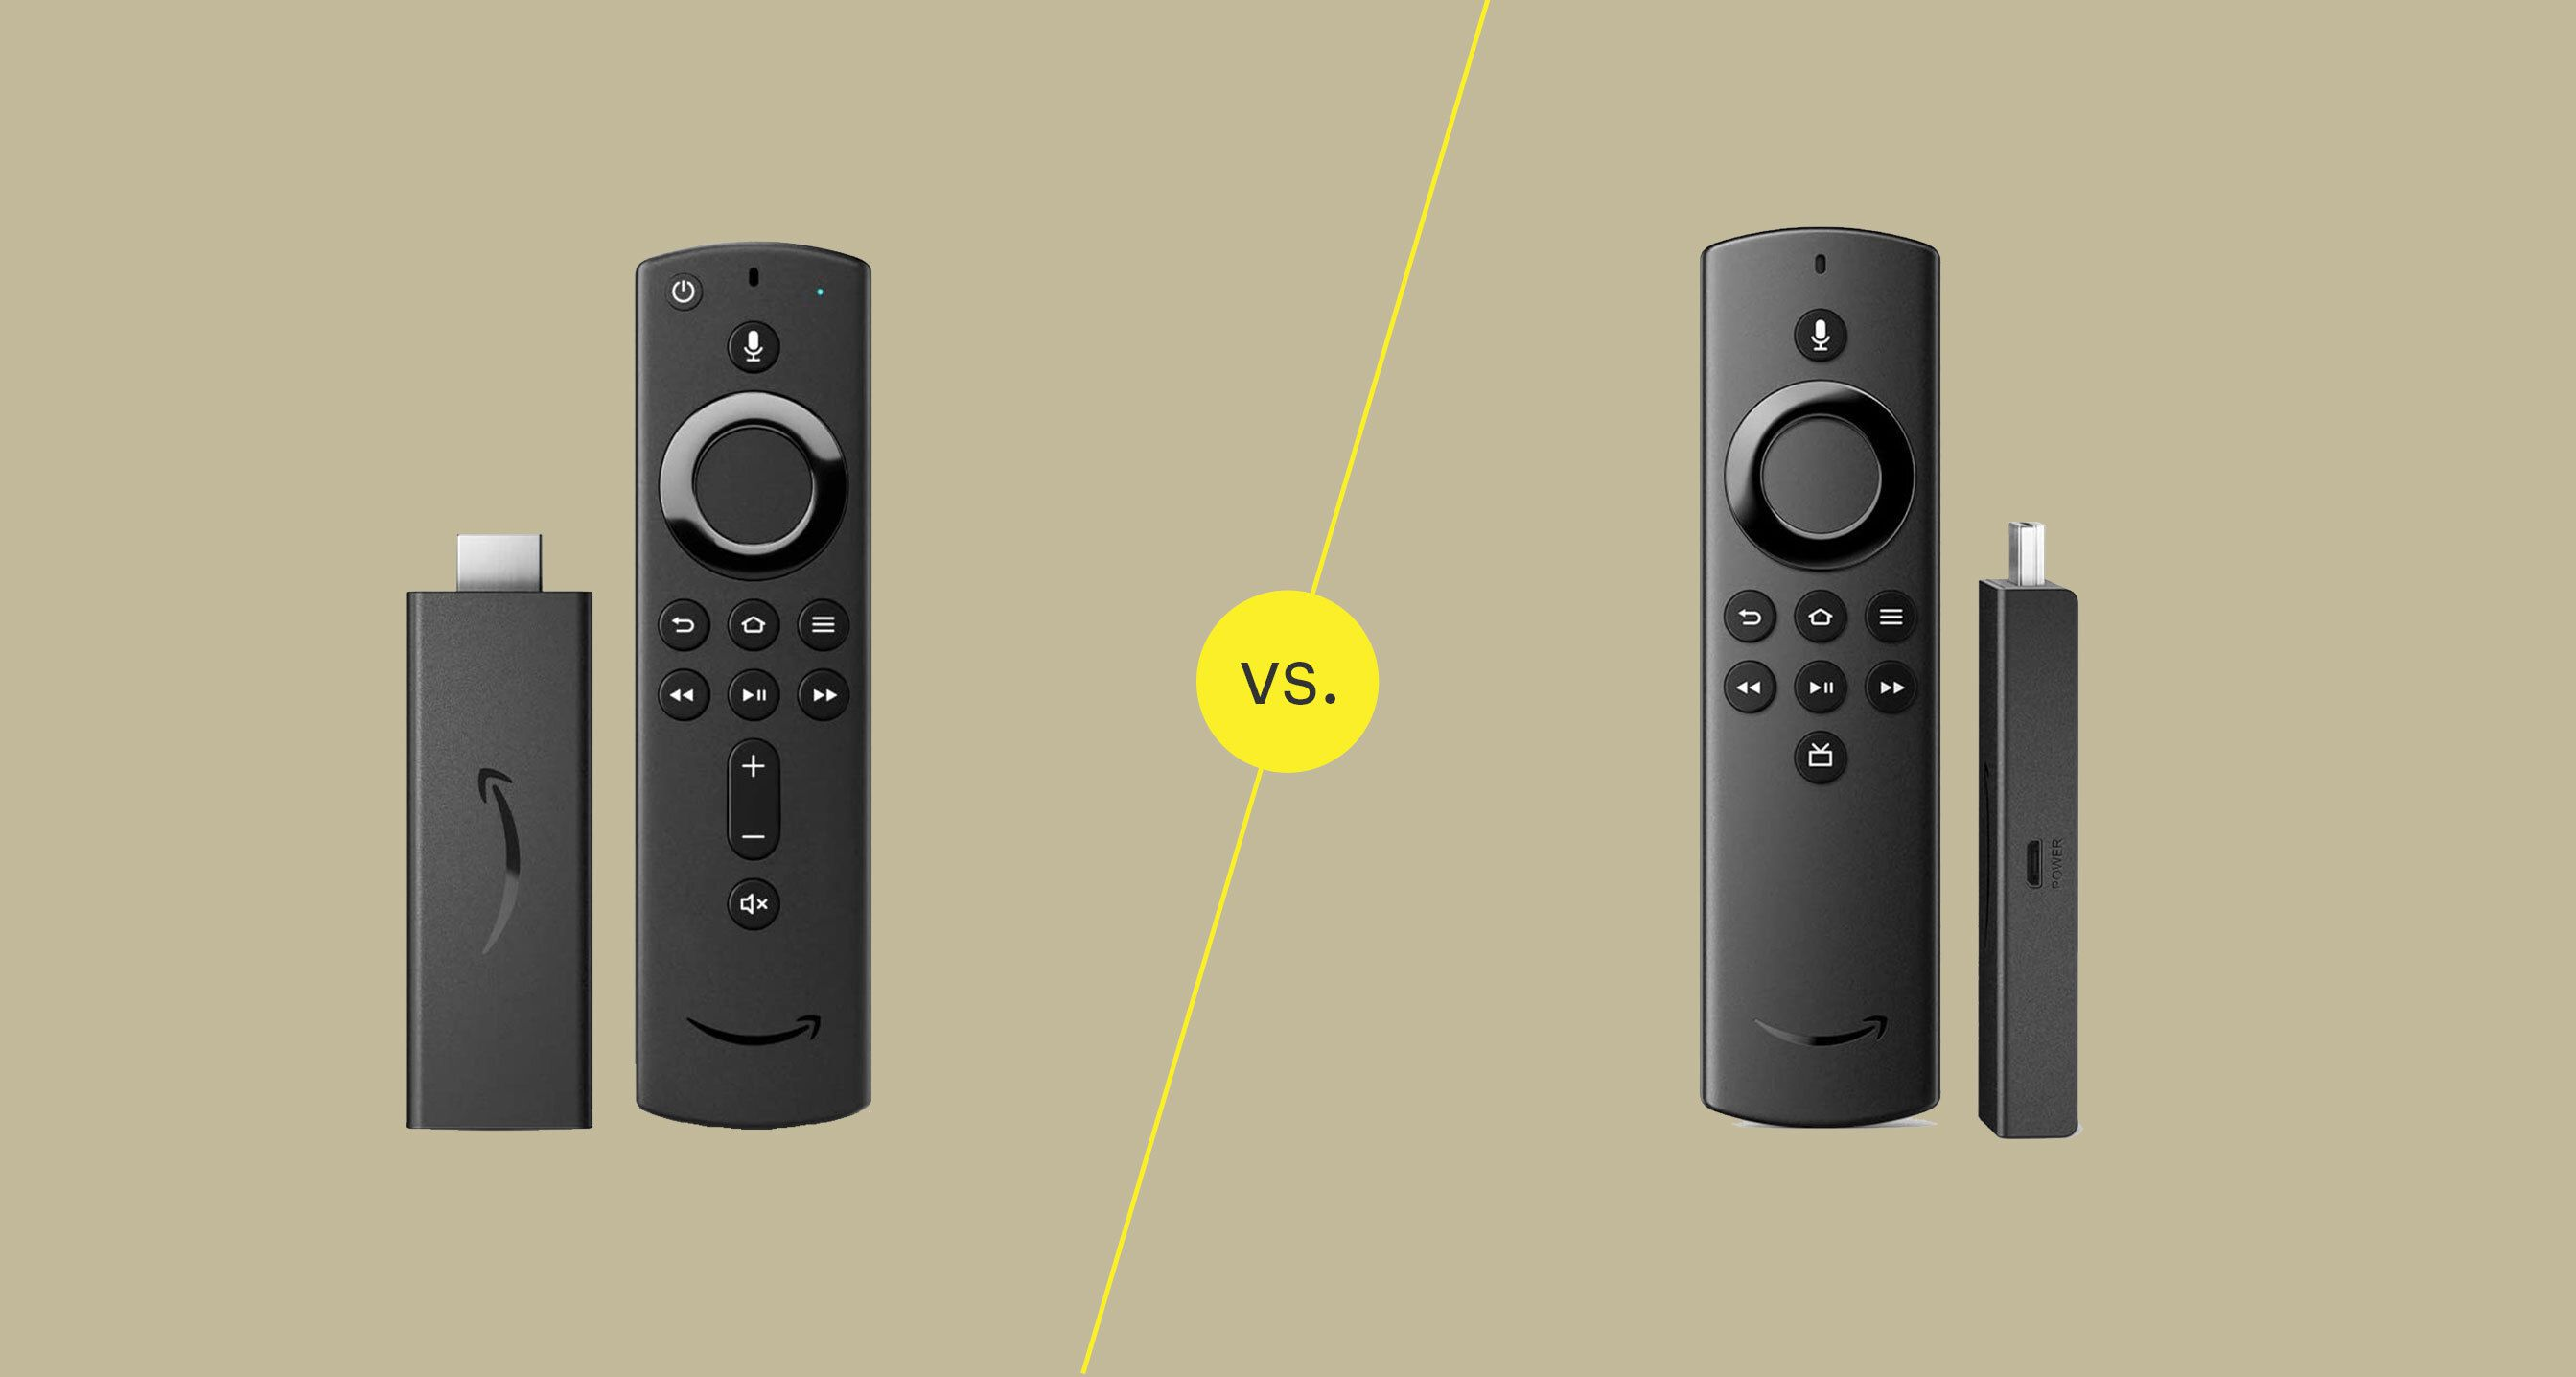 Fire TV Stick vs. Fire TV Stick Lite: What's the Difference?